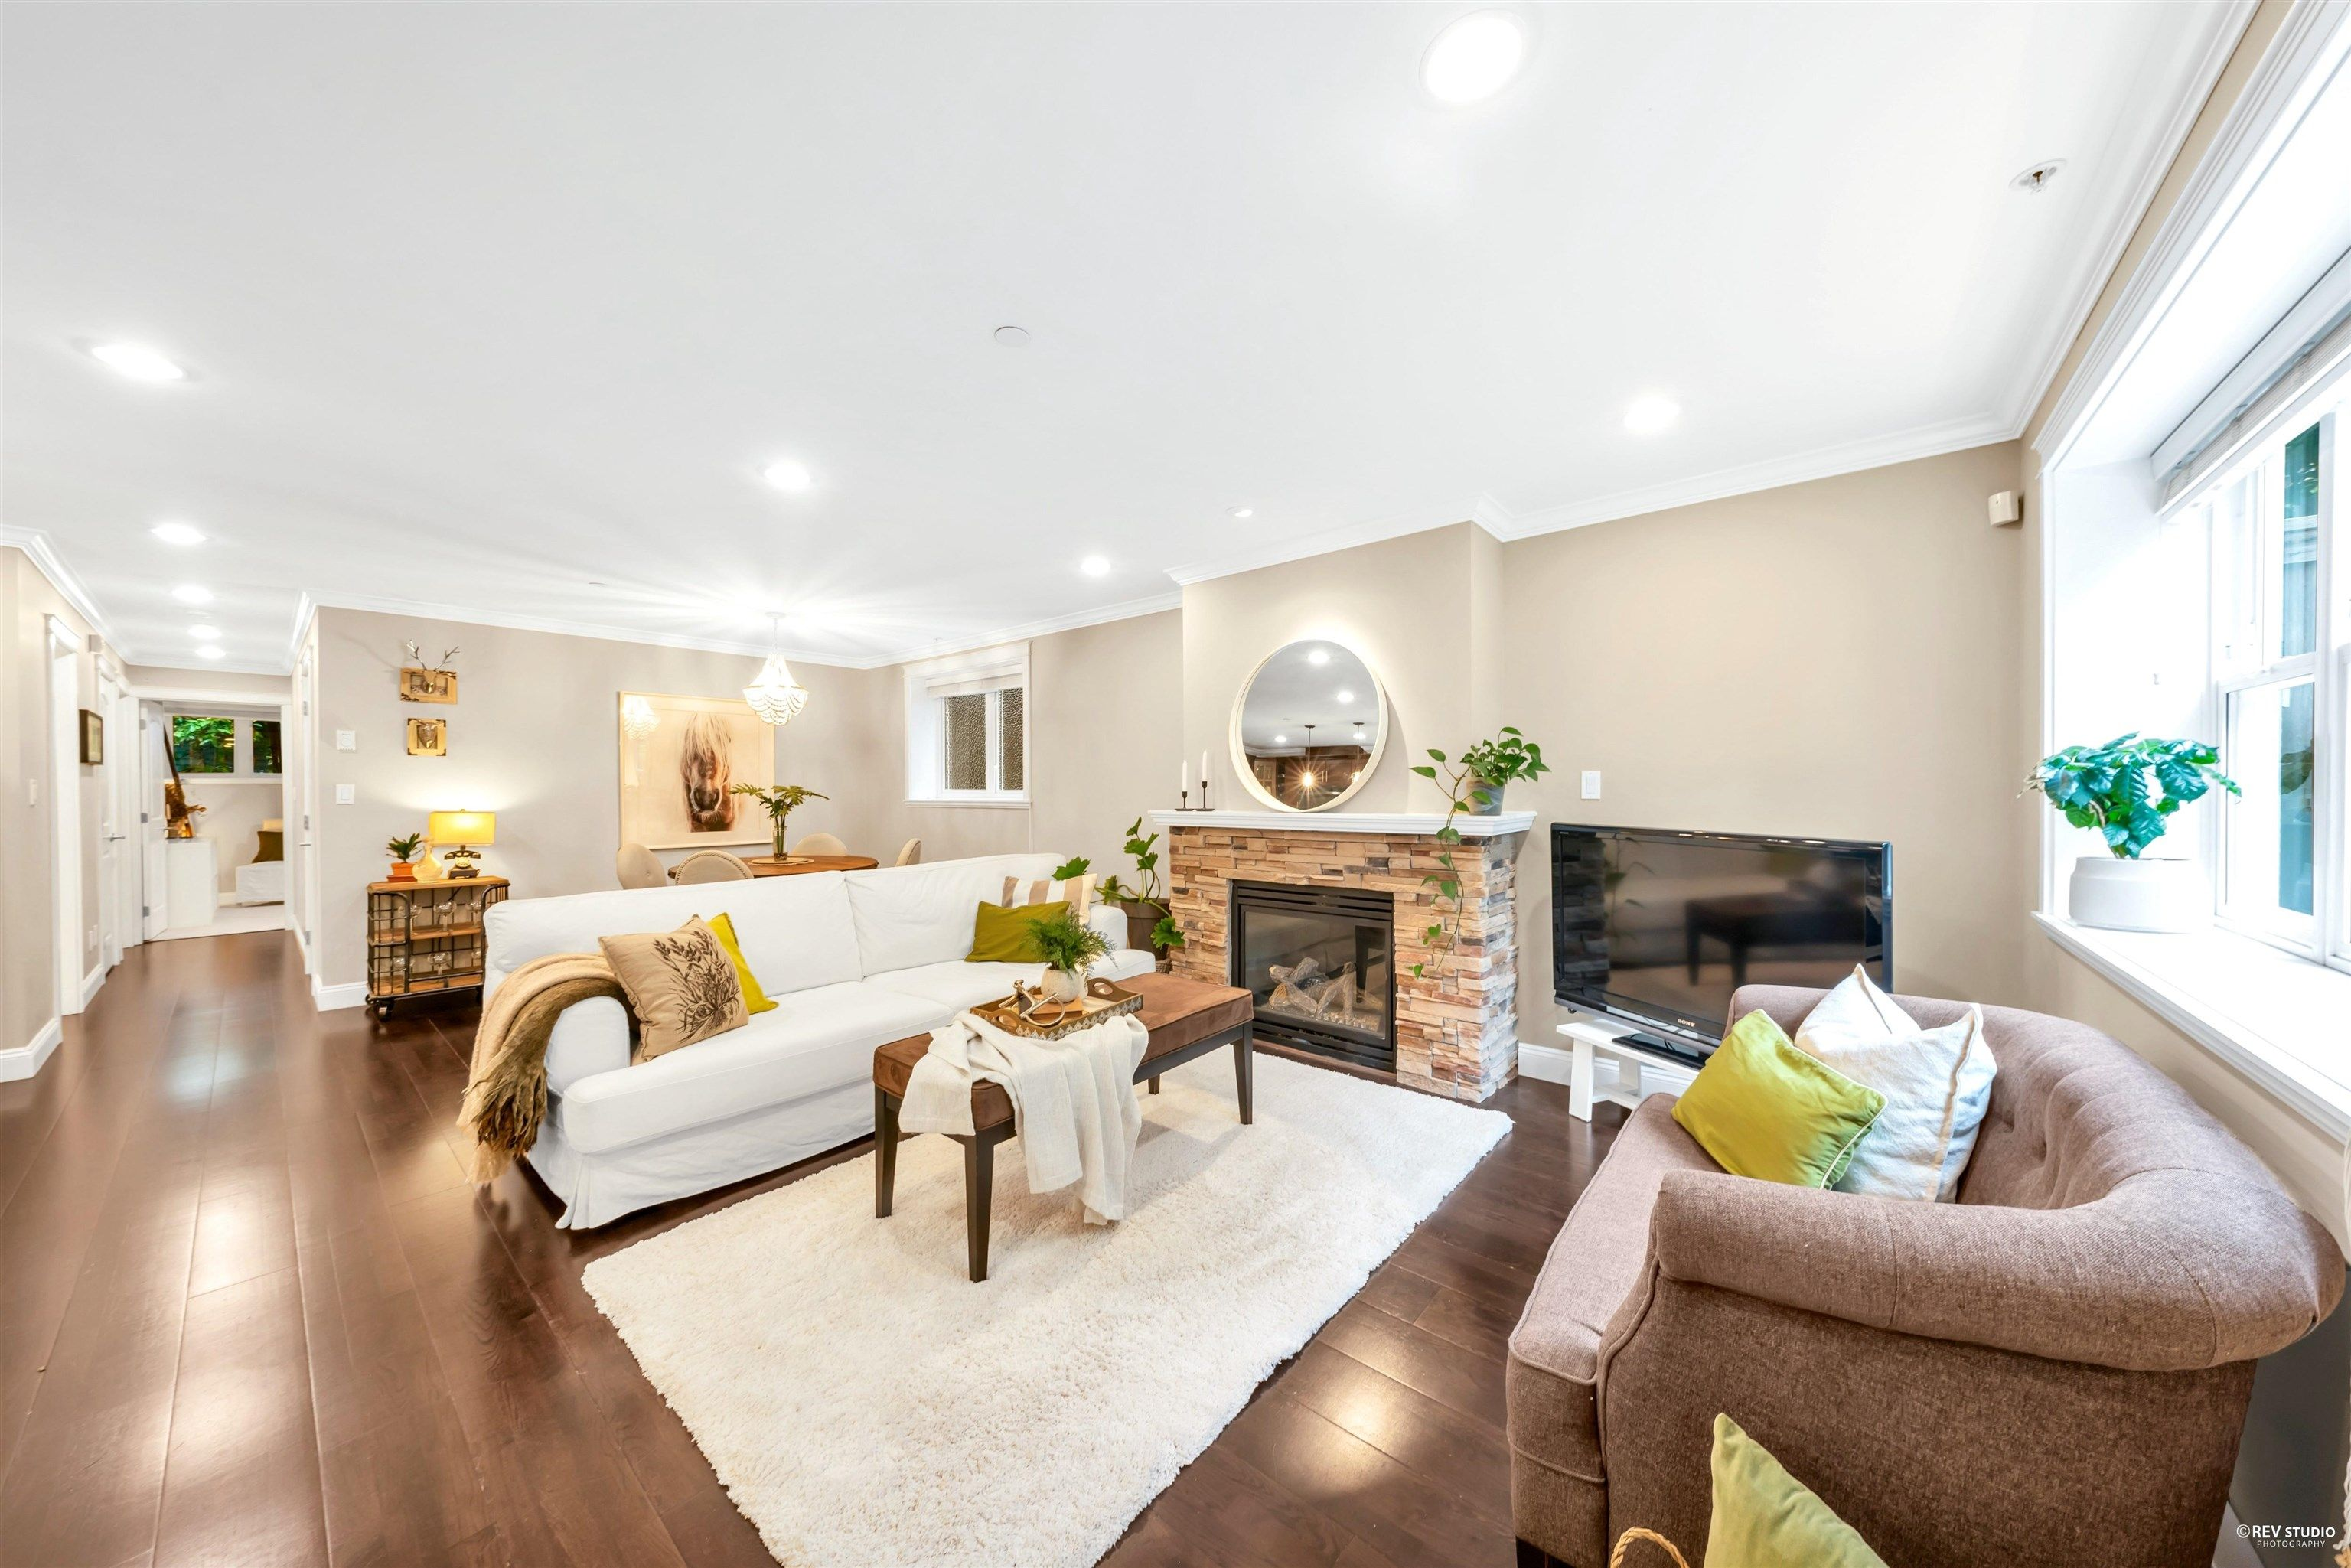 """Main Photo: 2 1624 GRANT Street in Vancouver: Grandview Woodland Townhouse for sale in """"Grant's Place"""" (Vancouver East)  : MLS®# R2621847"""